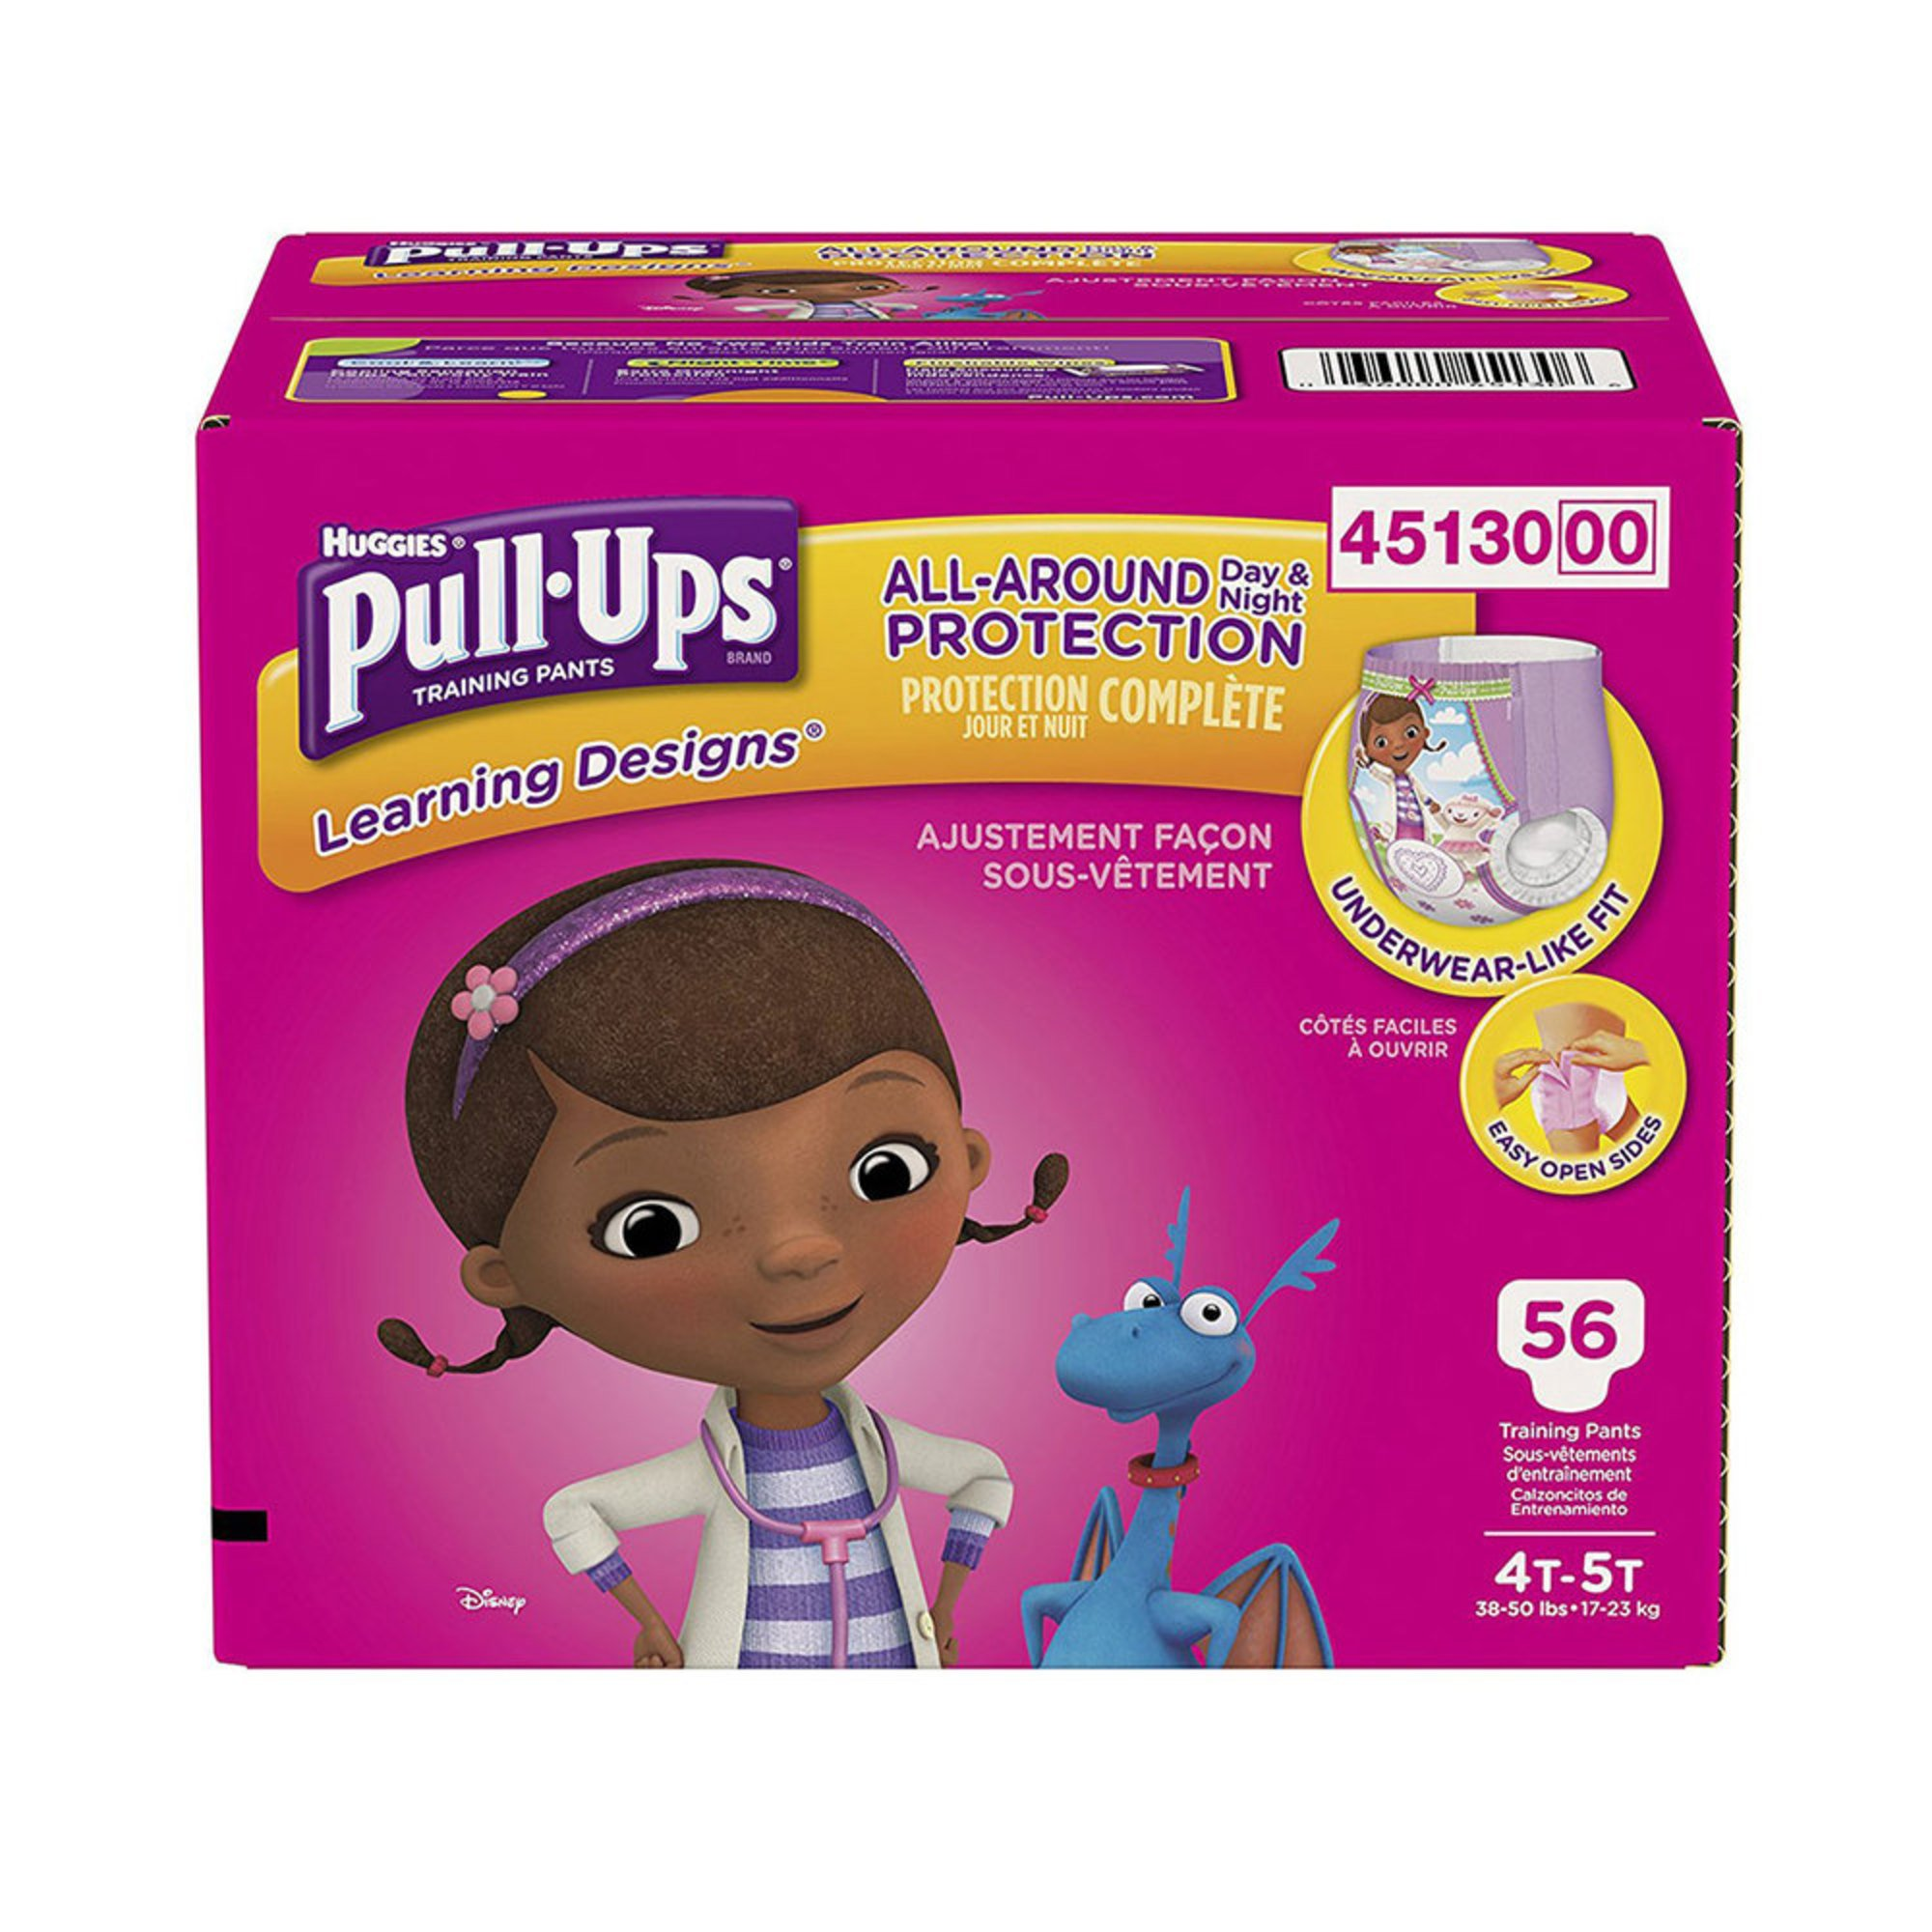 Pull Ups Girls' Training Pants - Size 4t/5t, 56-count ...